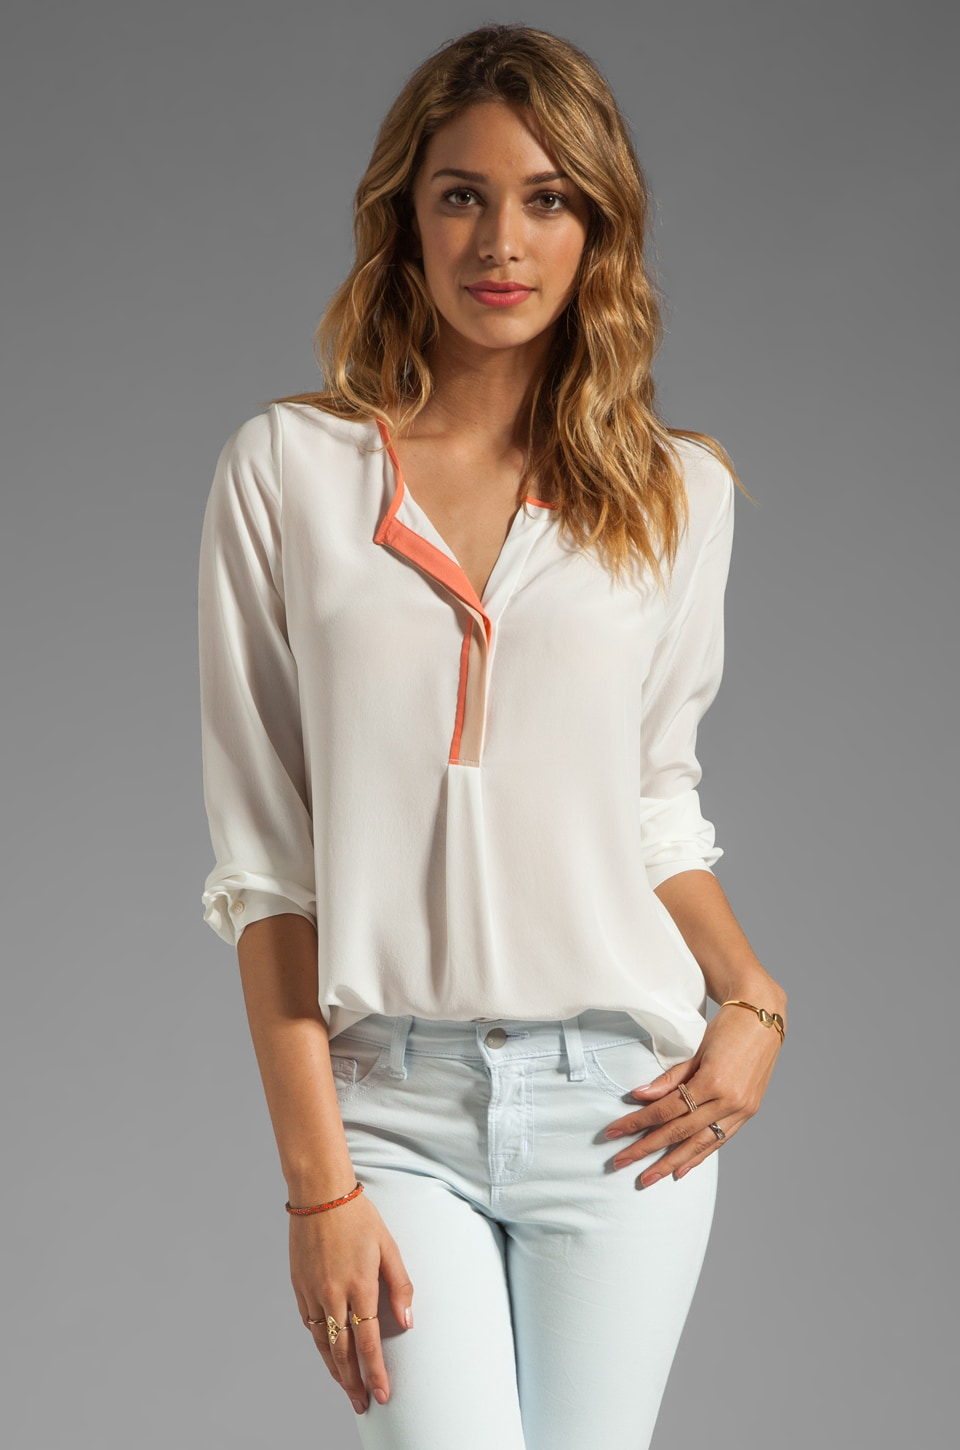 Joie Vixon Color Block Detail Blouse in Porcelain/Hot Coral